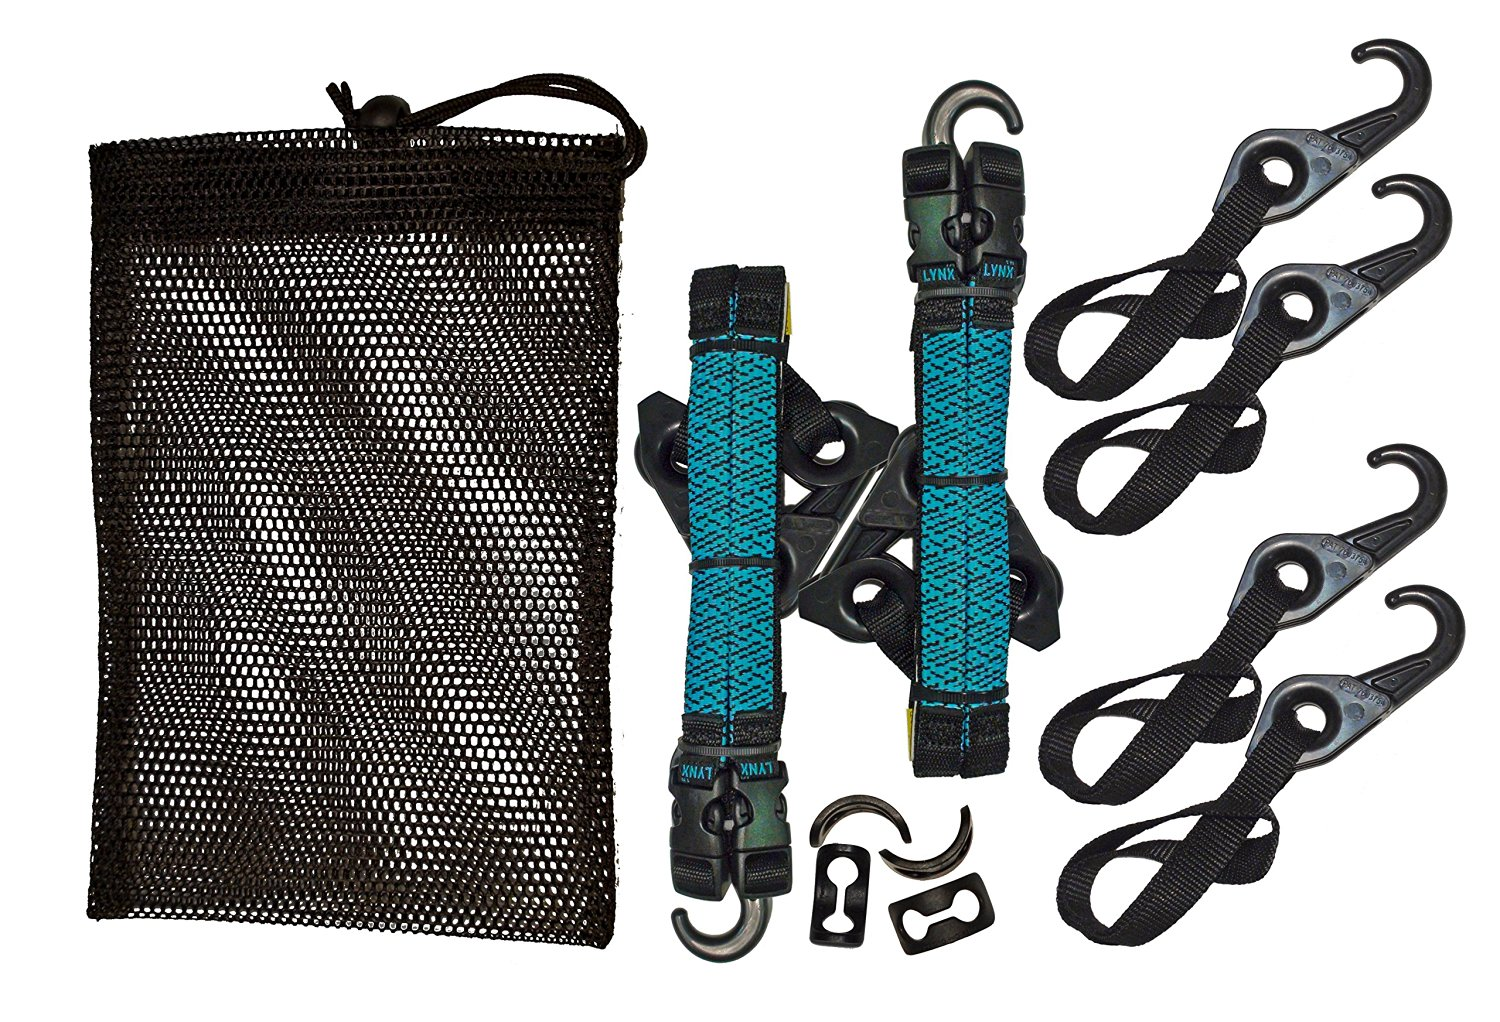 LYNX Hooks® Interlocking Adjustable Gear Strap Stash Bag Kit (Aqua Blue)